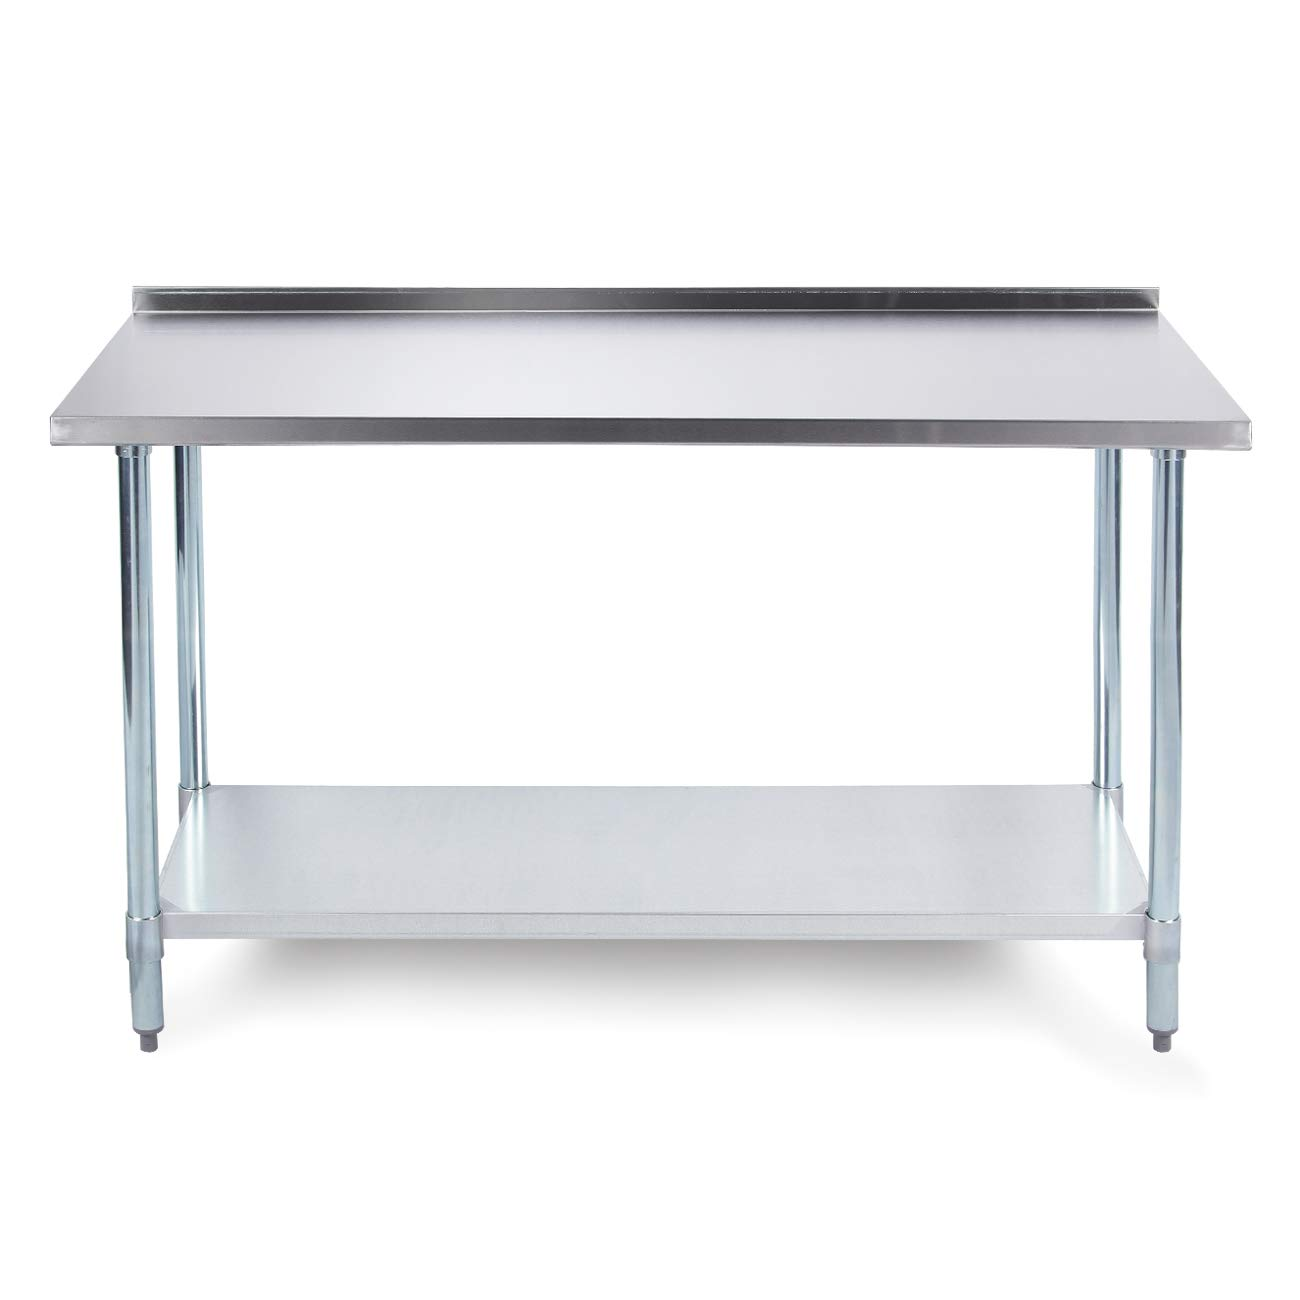 ARKSEN Commercial Kitchen Laundry Garage Work Prep Table w/Galvanized Undershelf and Backsplash, 18 Gauge 72'' x 24''